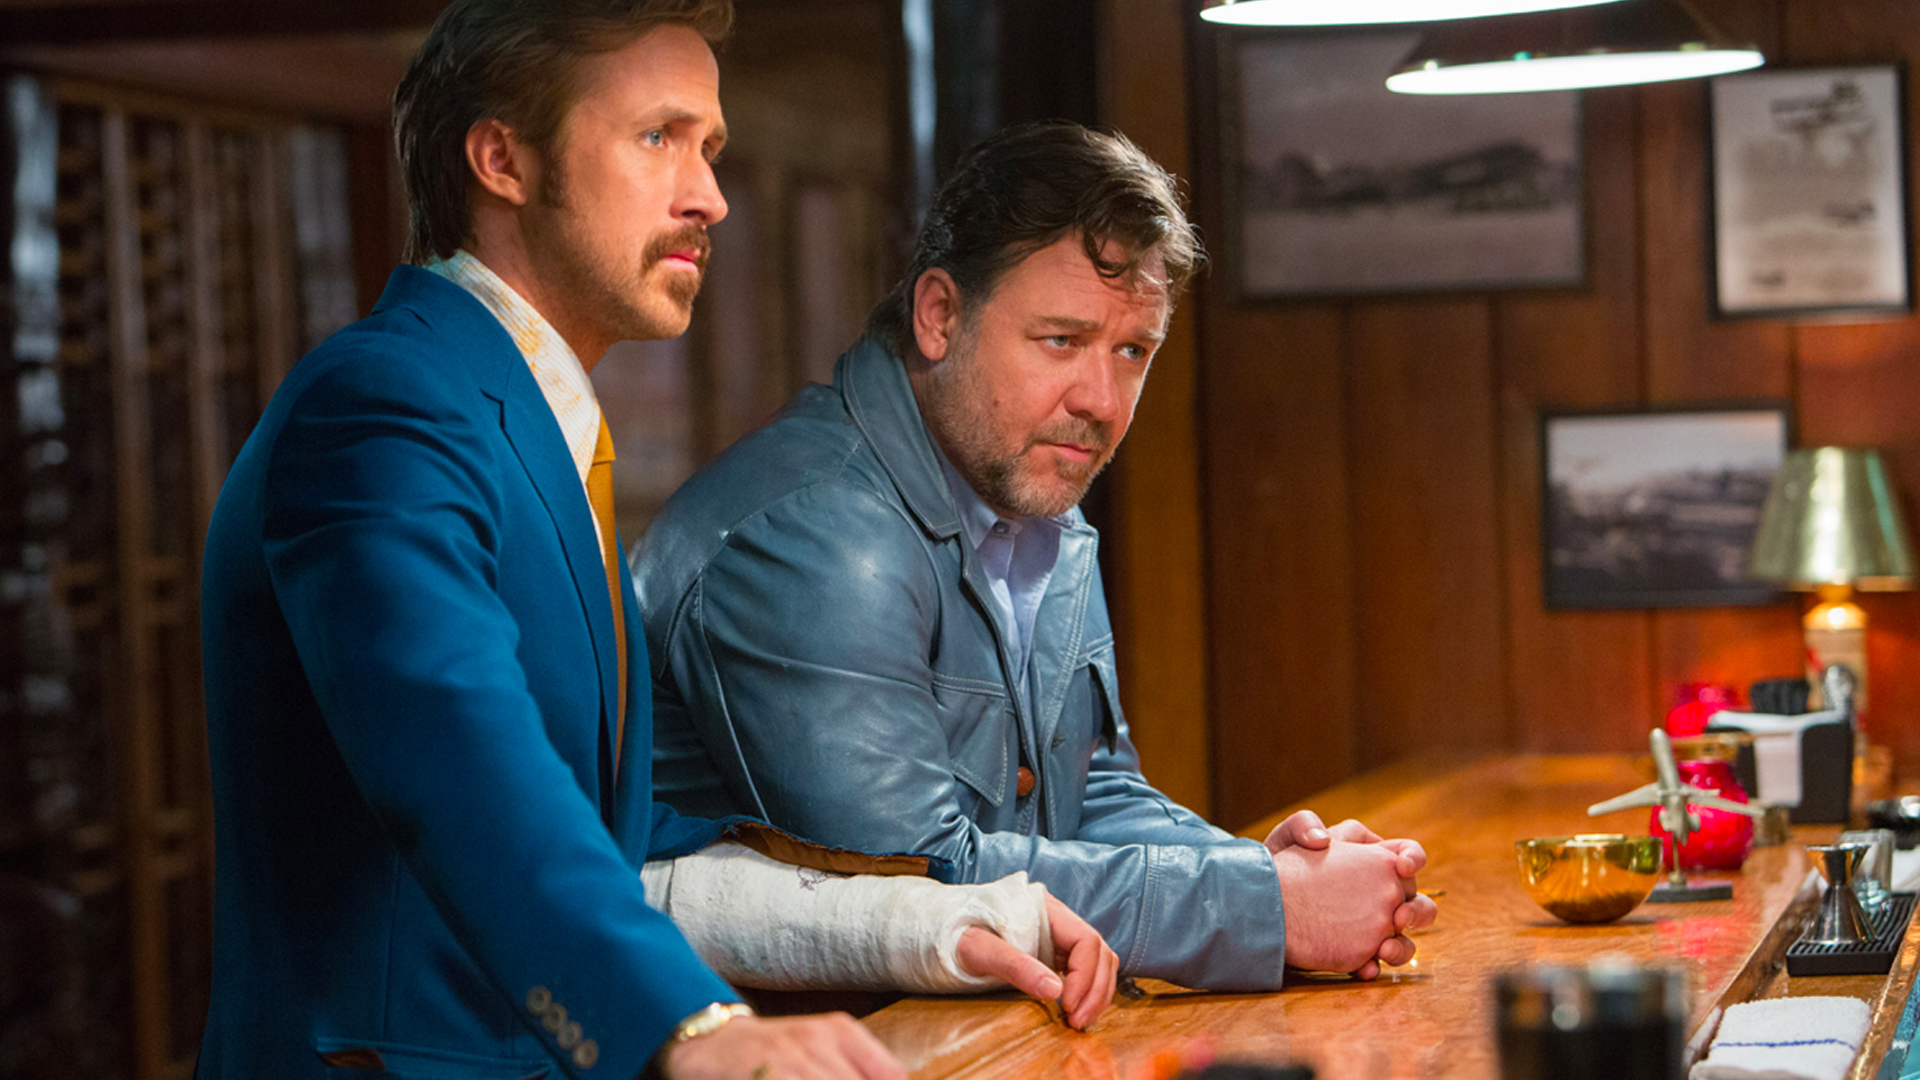 Shane Black Iron Man 3 Kiss Kiss Bang Bang Is One Of My Favorite Filmmakers So Im Really Excited To See His New Movie The Nice Guys